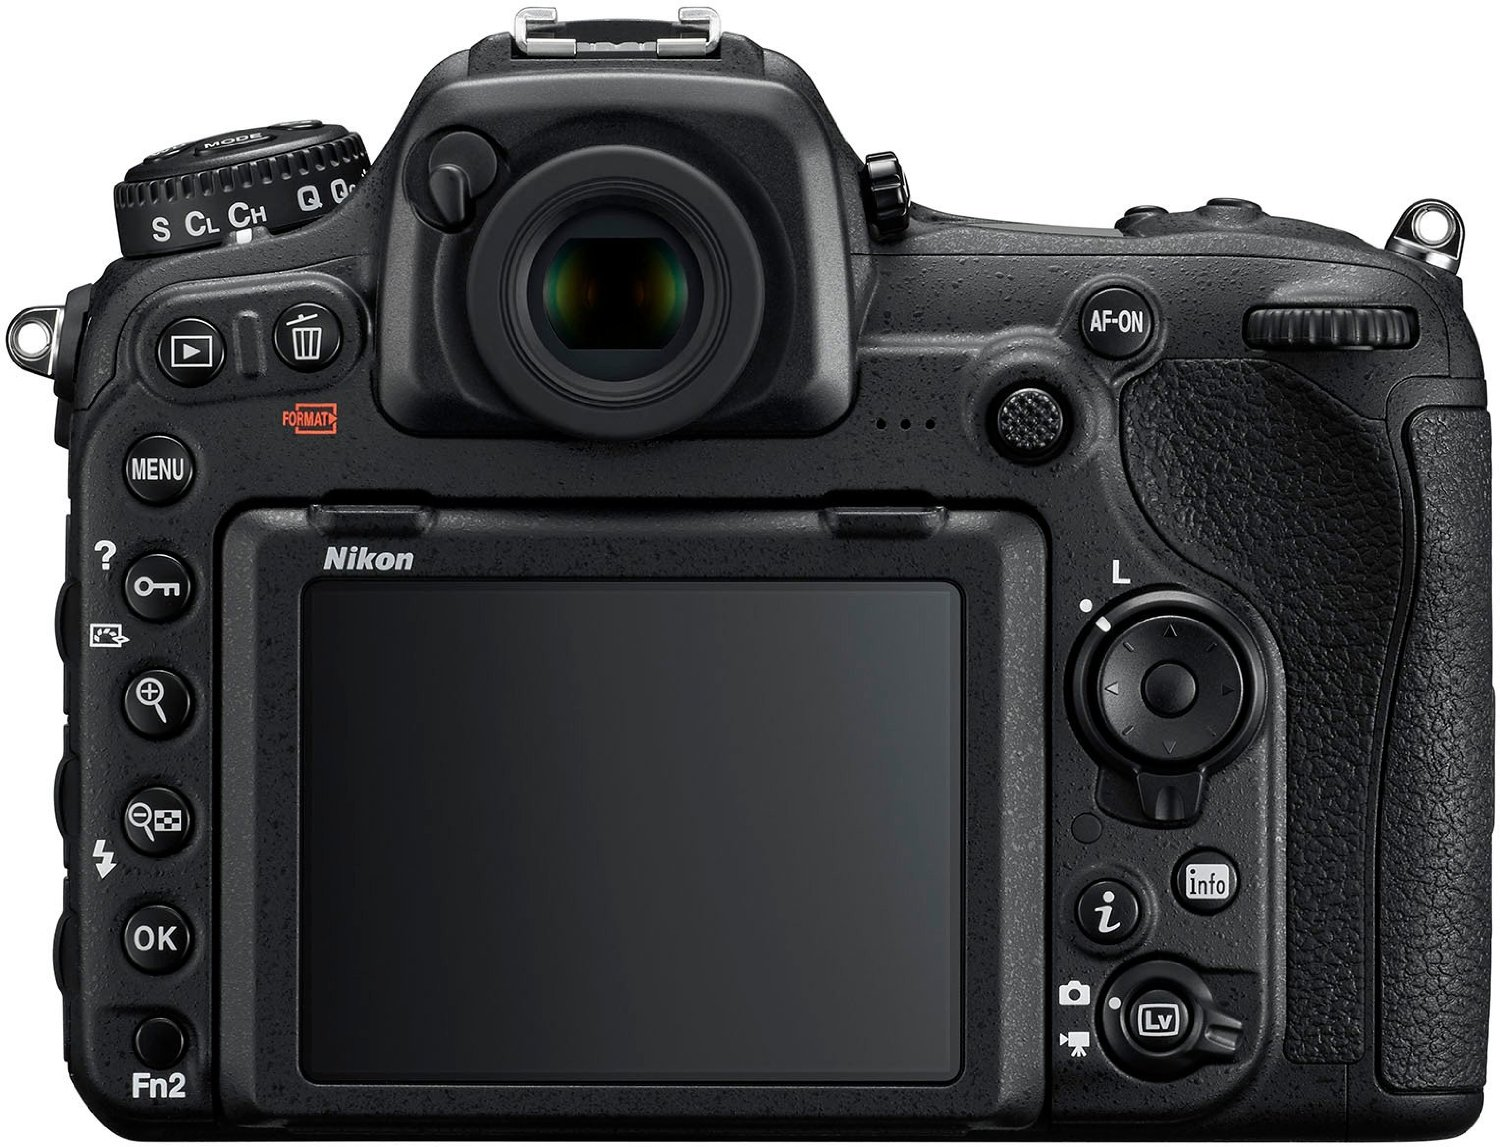 D500 display and touch screen